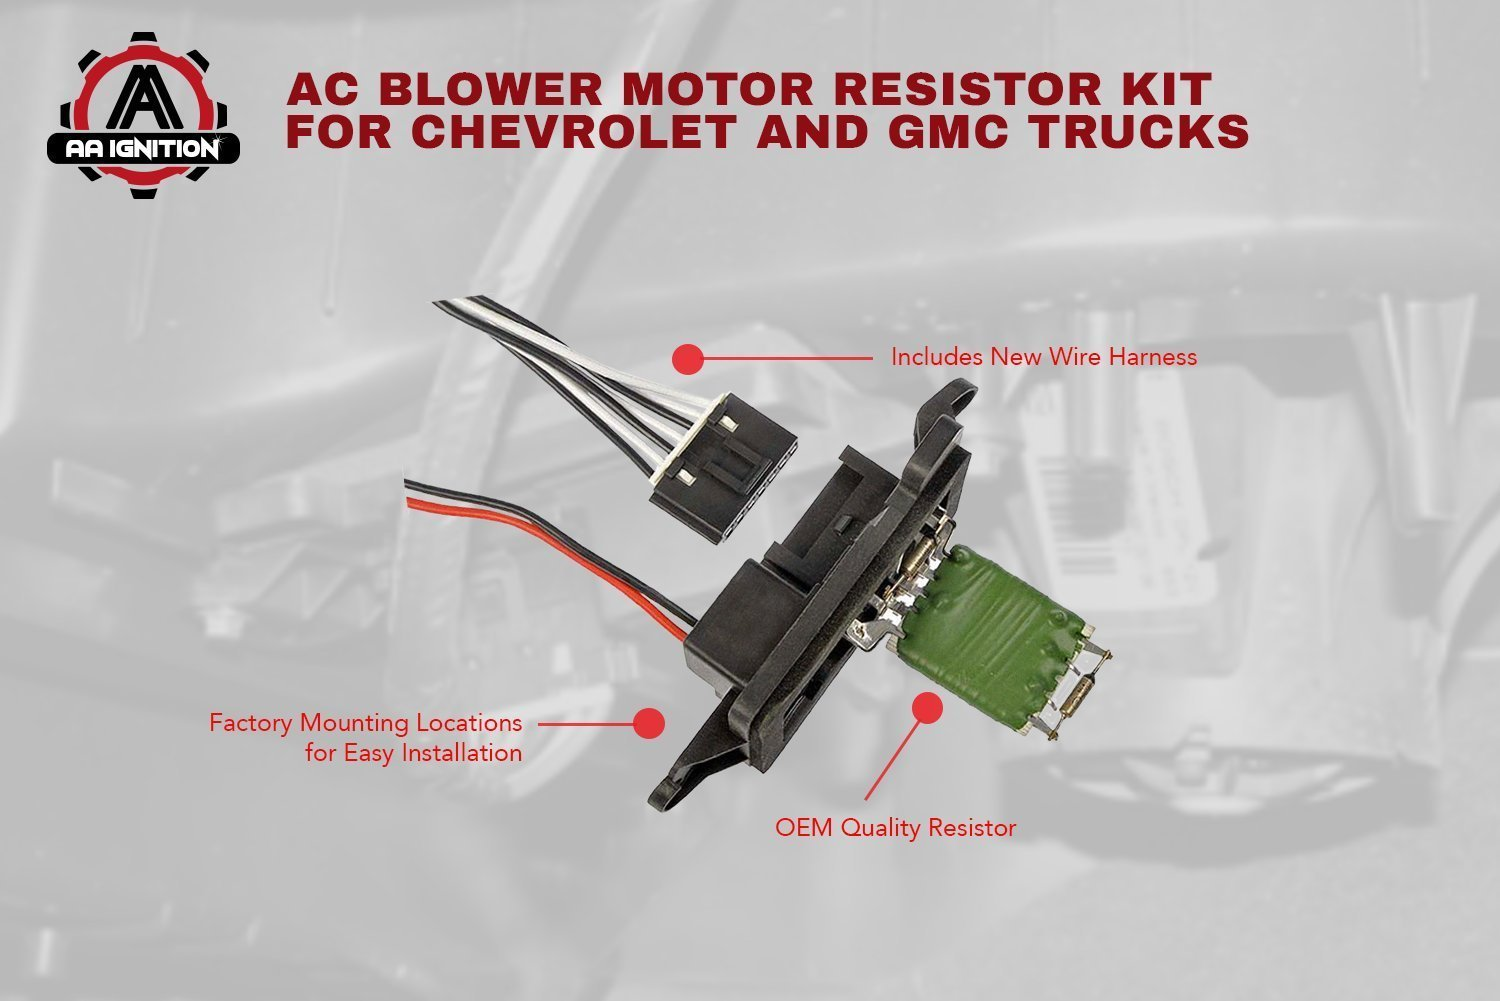 Ac Blower Motor Resistor Kit With Harness Replaces 2002 Gmc Sierra Ip Main Fuse Box Diagram 973 405 15 81086 22807123 Fits Chevy Silverado Tahoe Suburban Avalanche Yukon Cadillac Escalade Hvac Fan Automotive